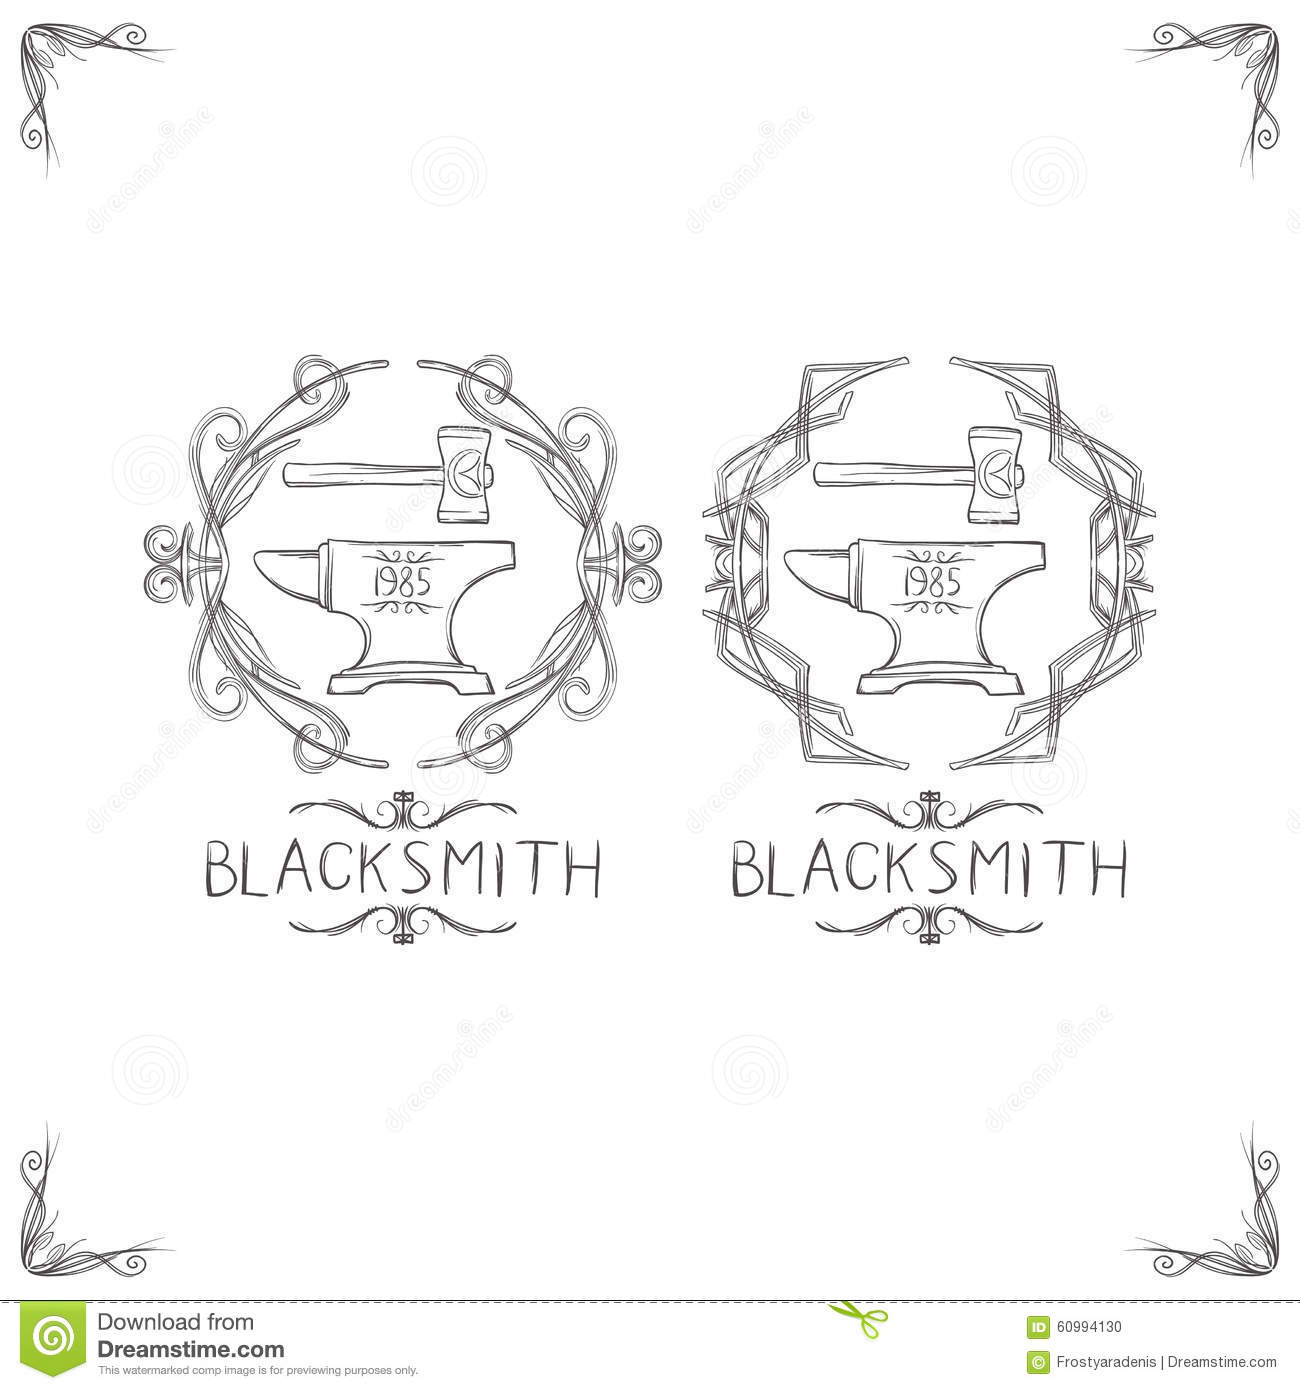 Blacksmith And Forging Logo Or Emblem Vintage Cartoon